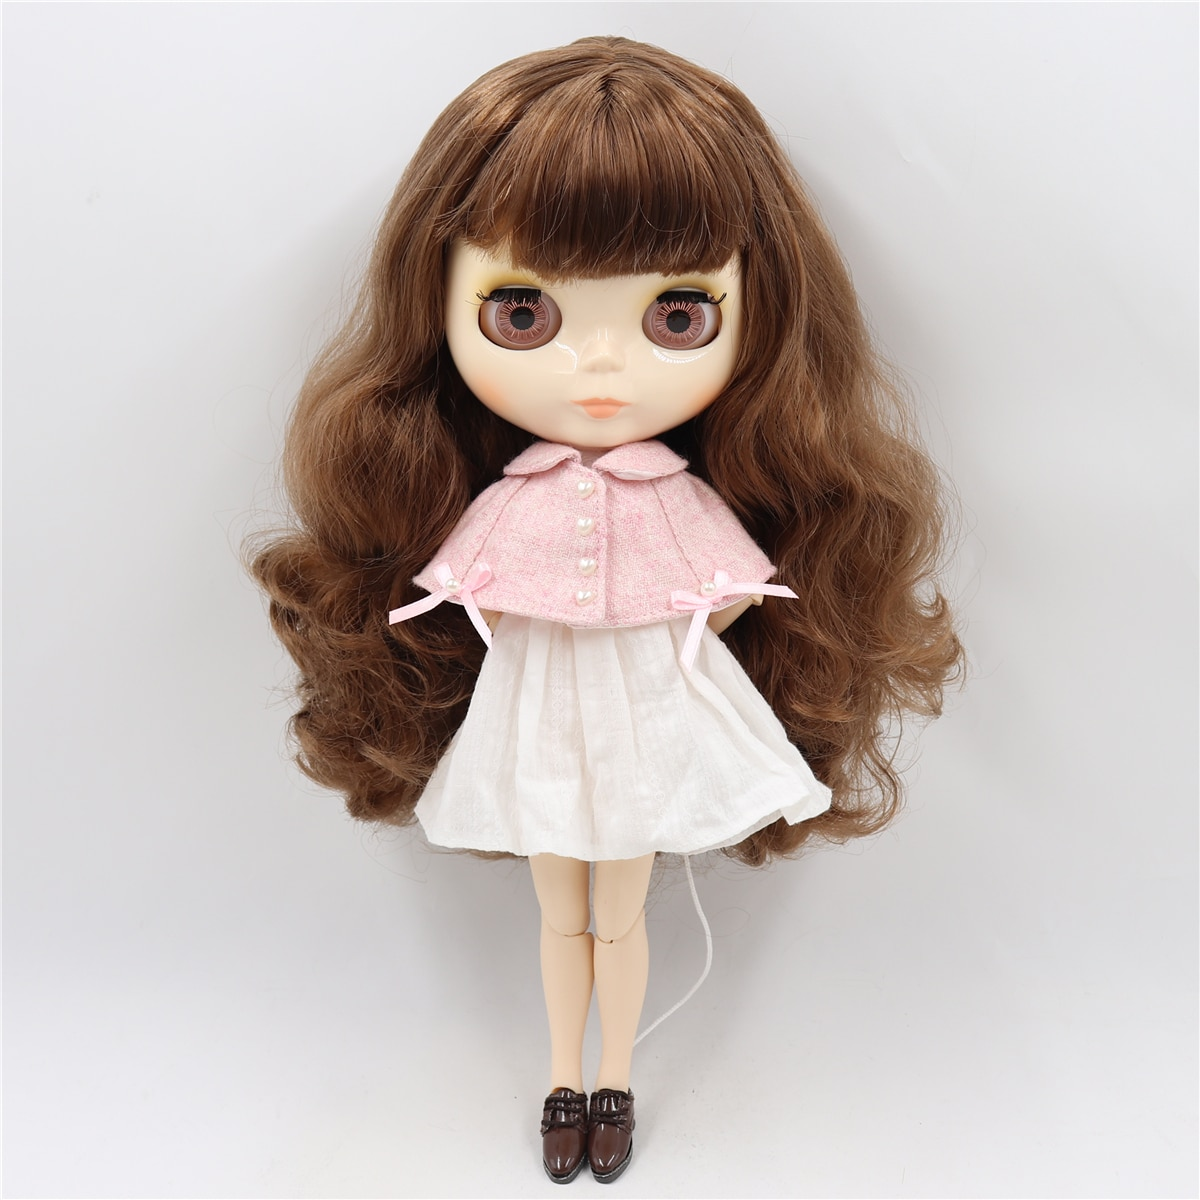 ICY factory blyth doll bjd toy joint body white skin shiny face 30cm 1/6 on sale special offer-2